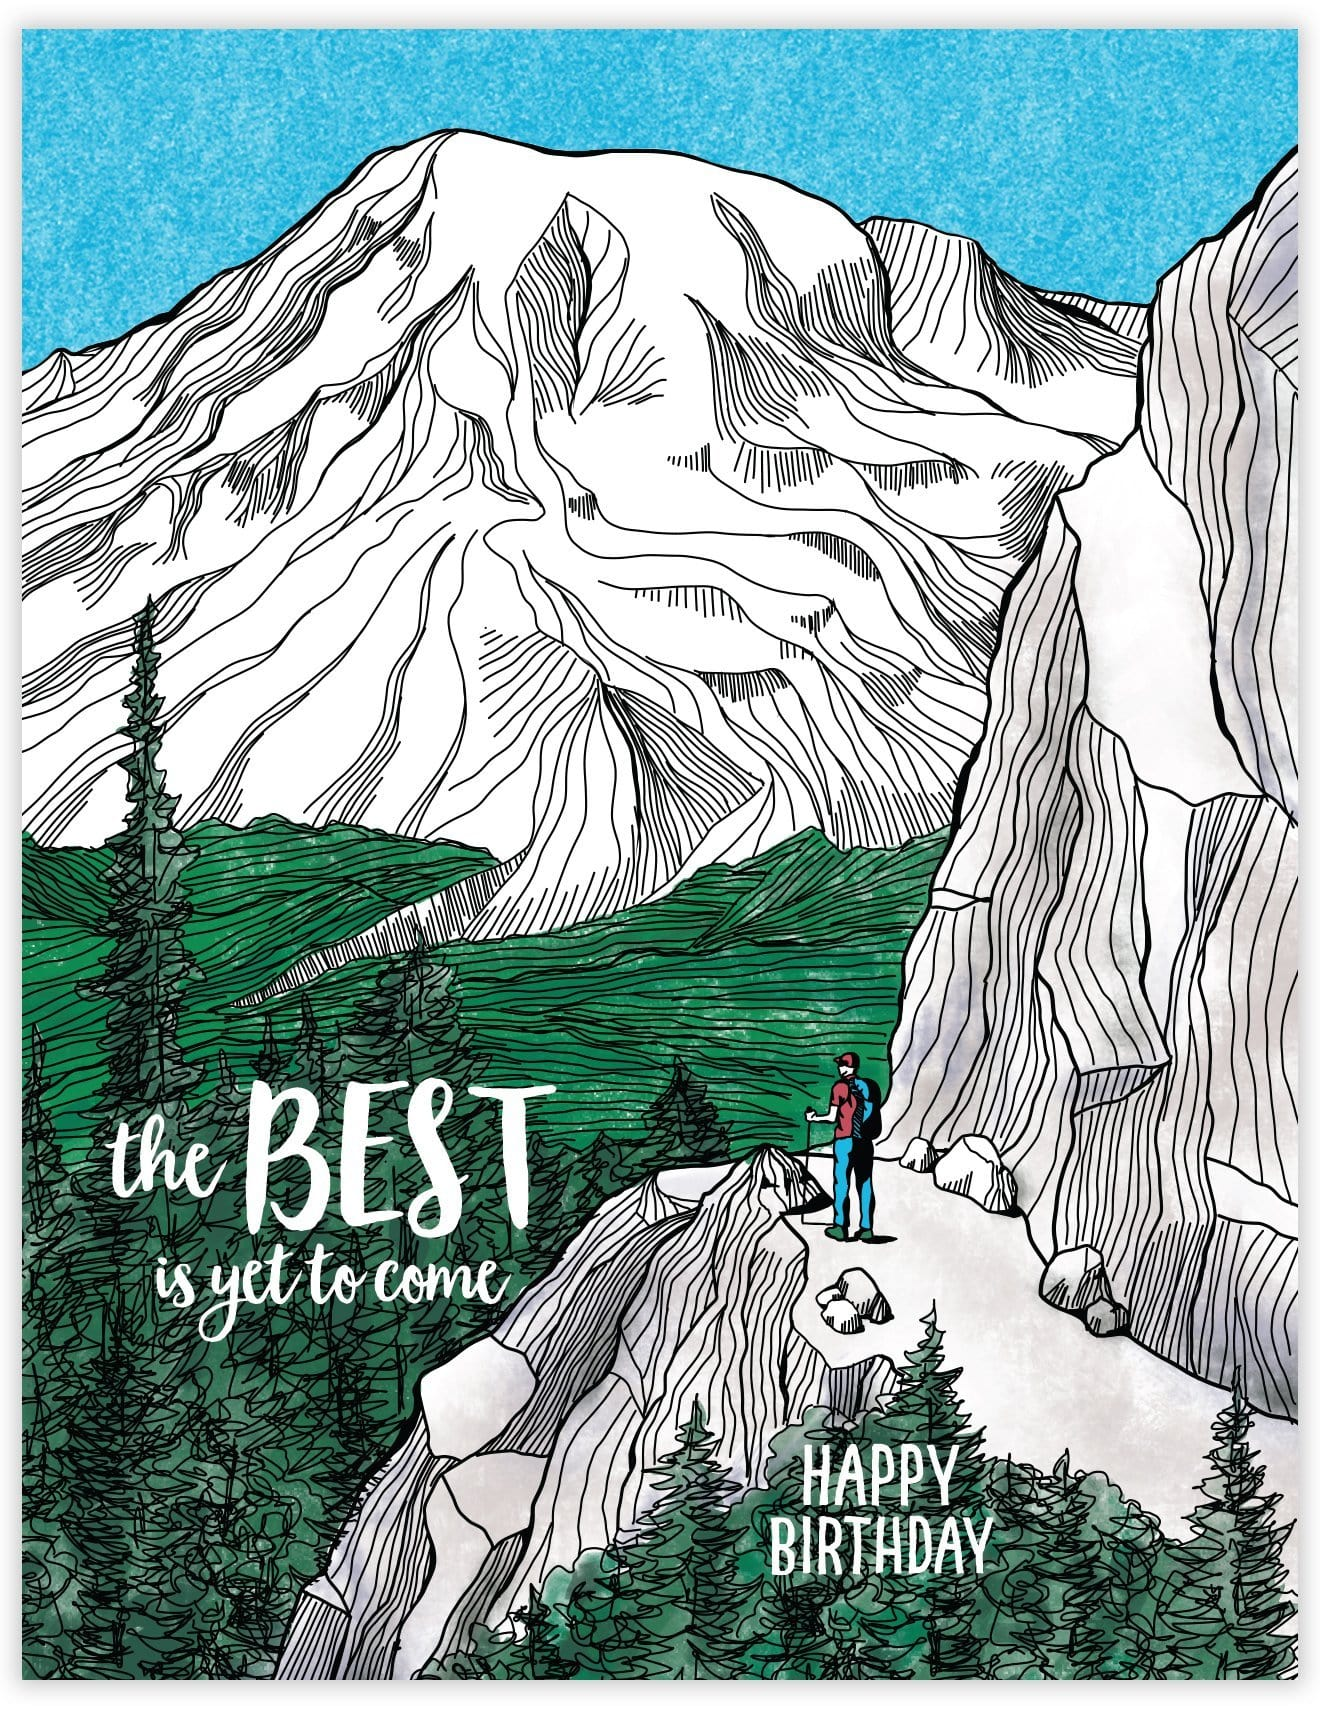 Best is Yet to Come Birthday Card